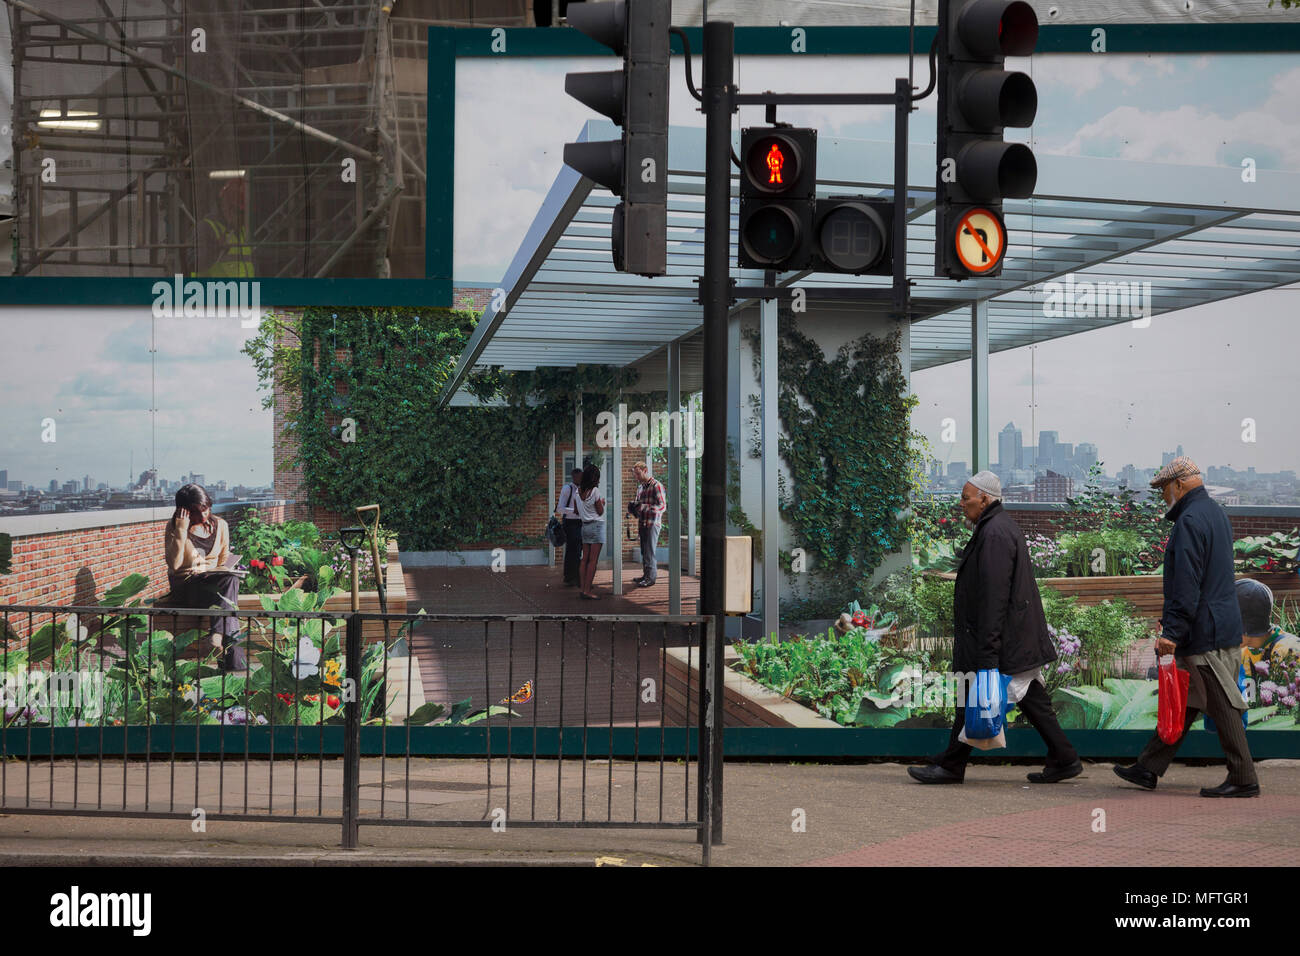 Passers-by and a marketing hoarding for the newest delvelopment at Elephant and Castle called Elephant Park, on 25th April 2018, in London, England. - Stock Image